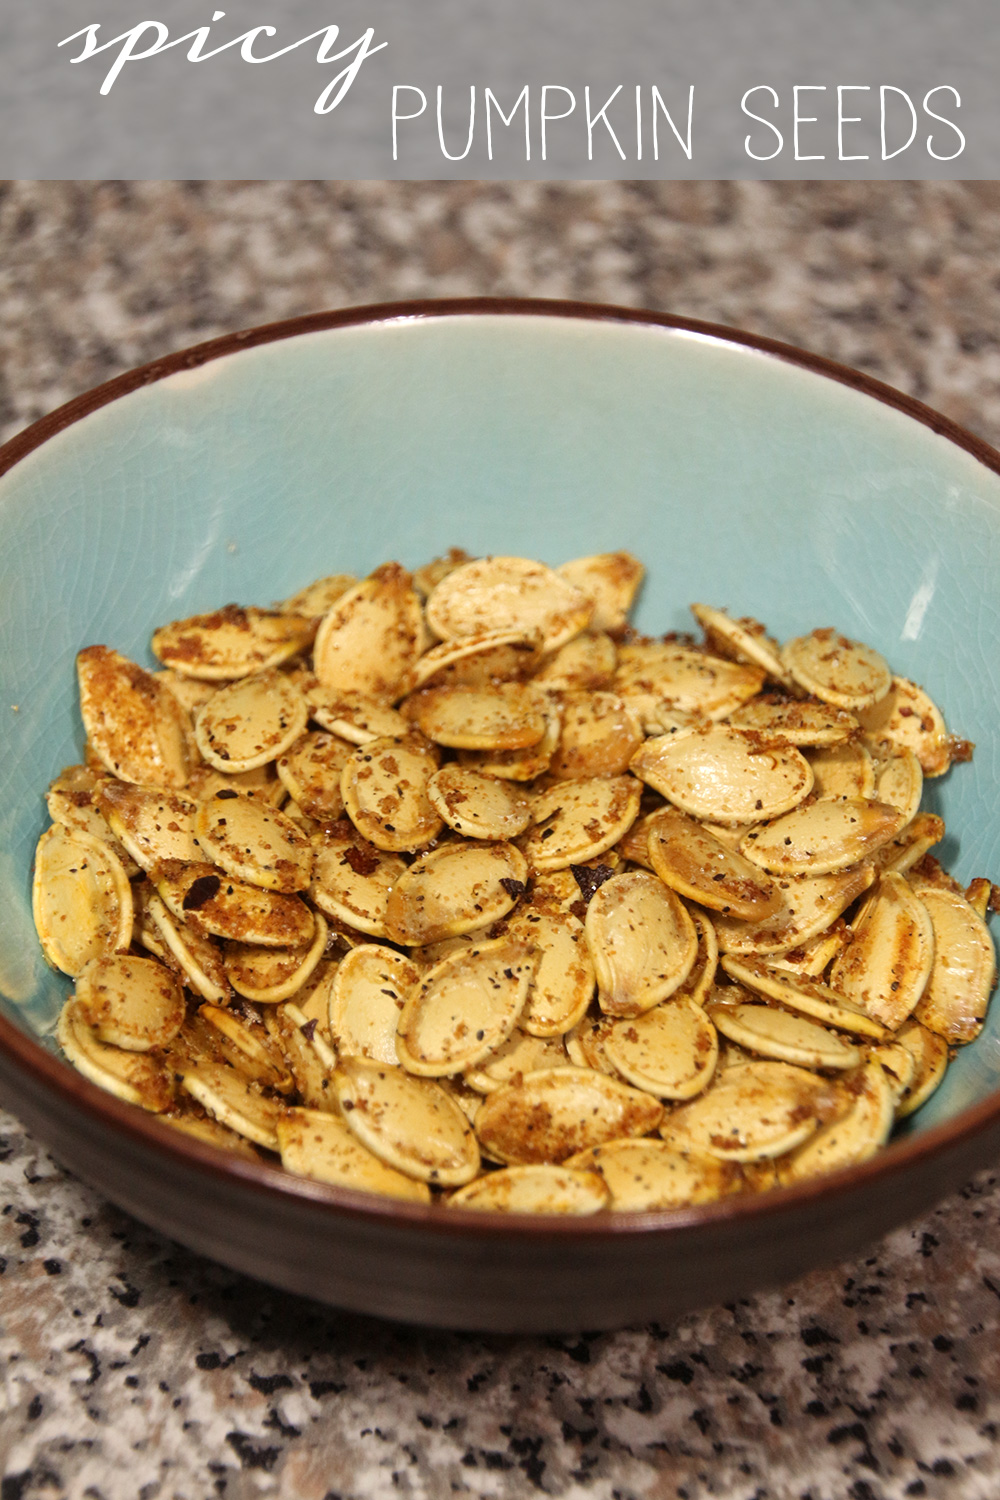 Spicy-Pumpkin-Seeds-013-text